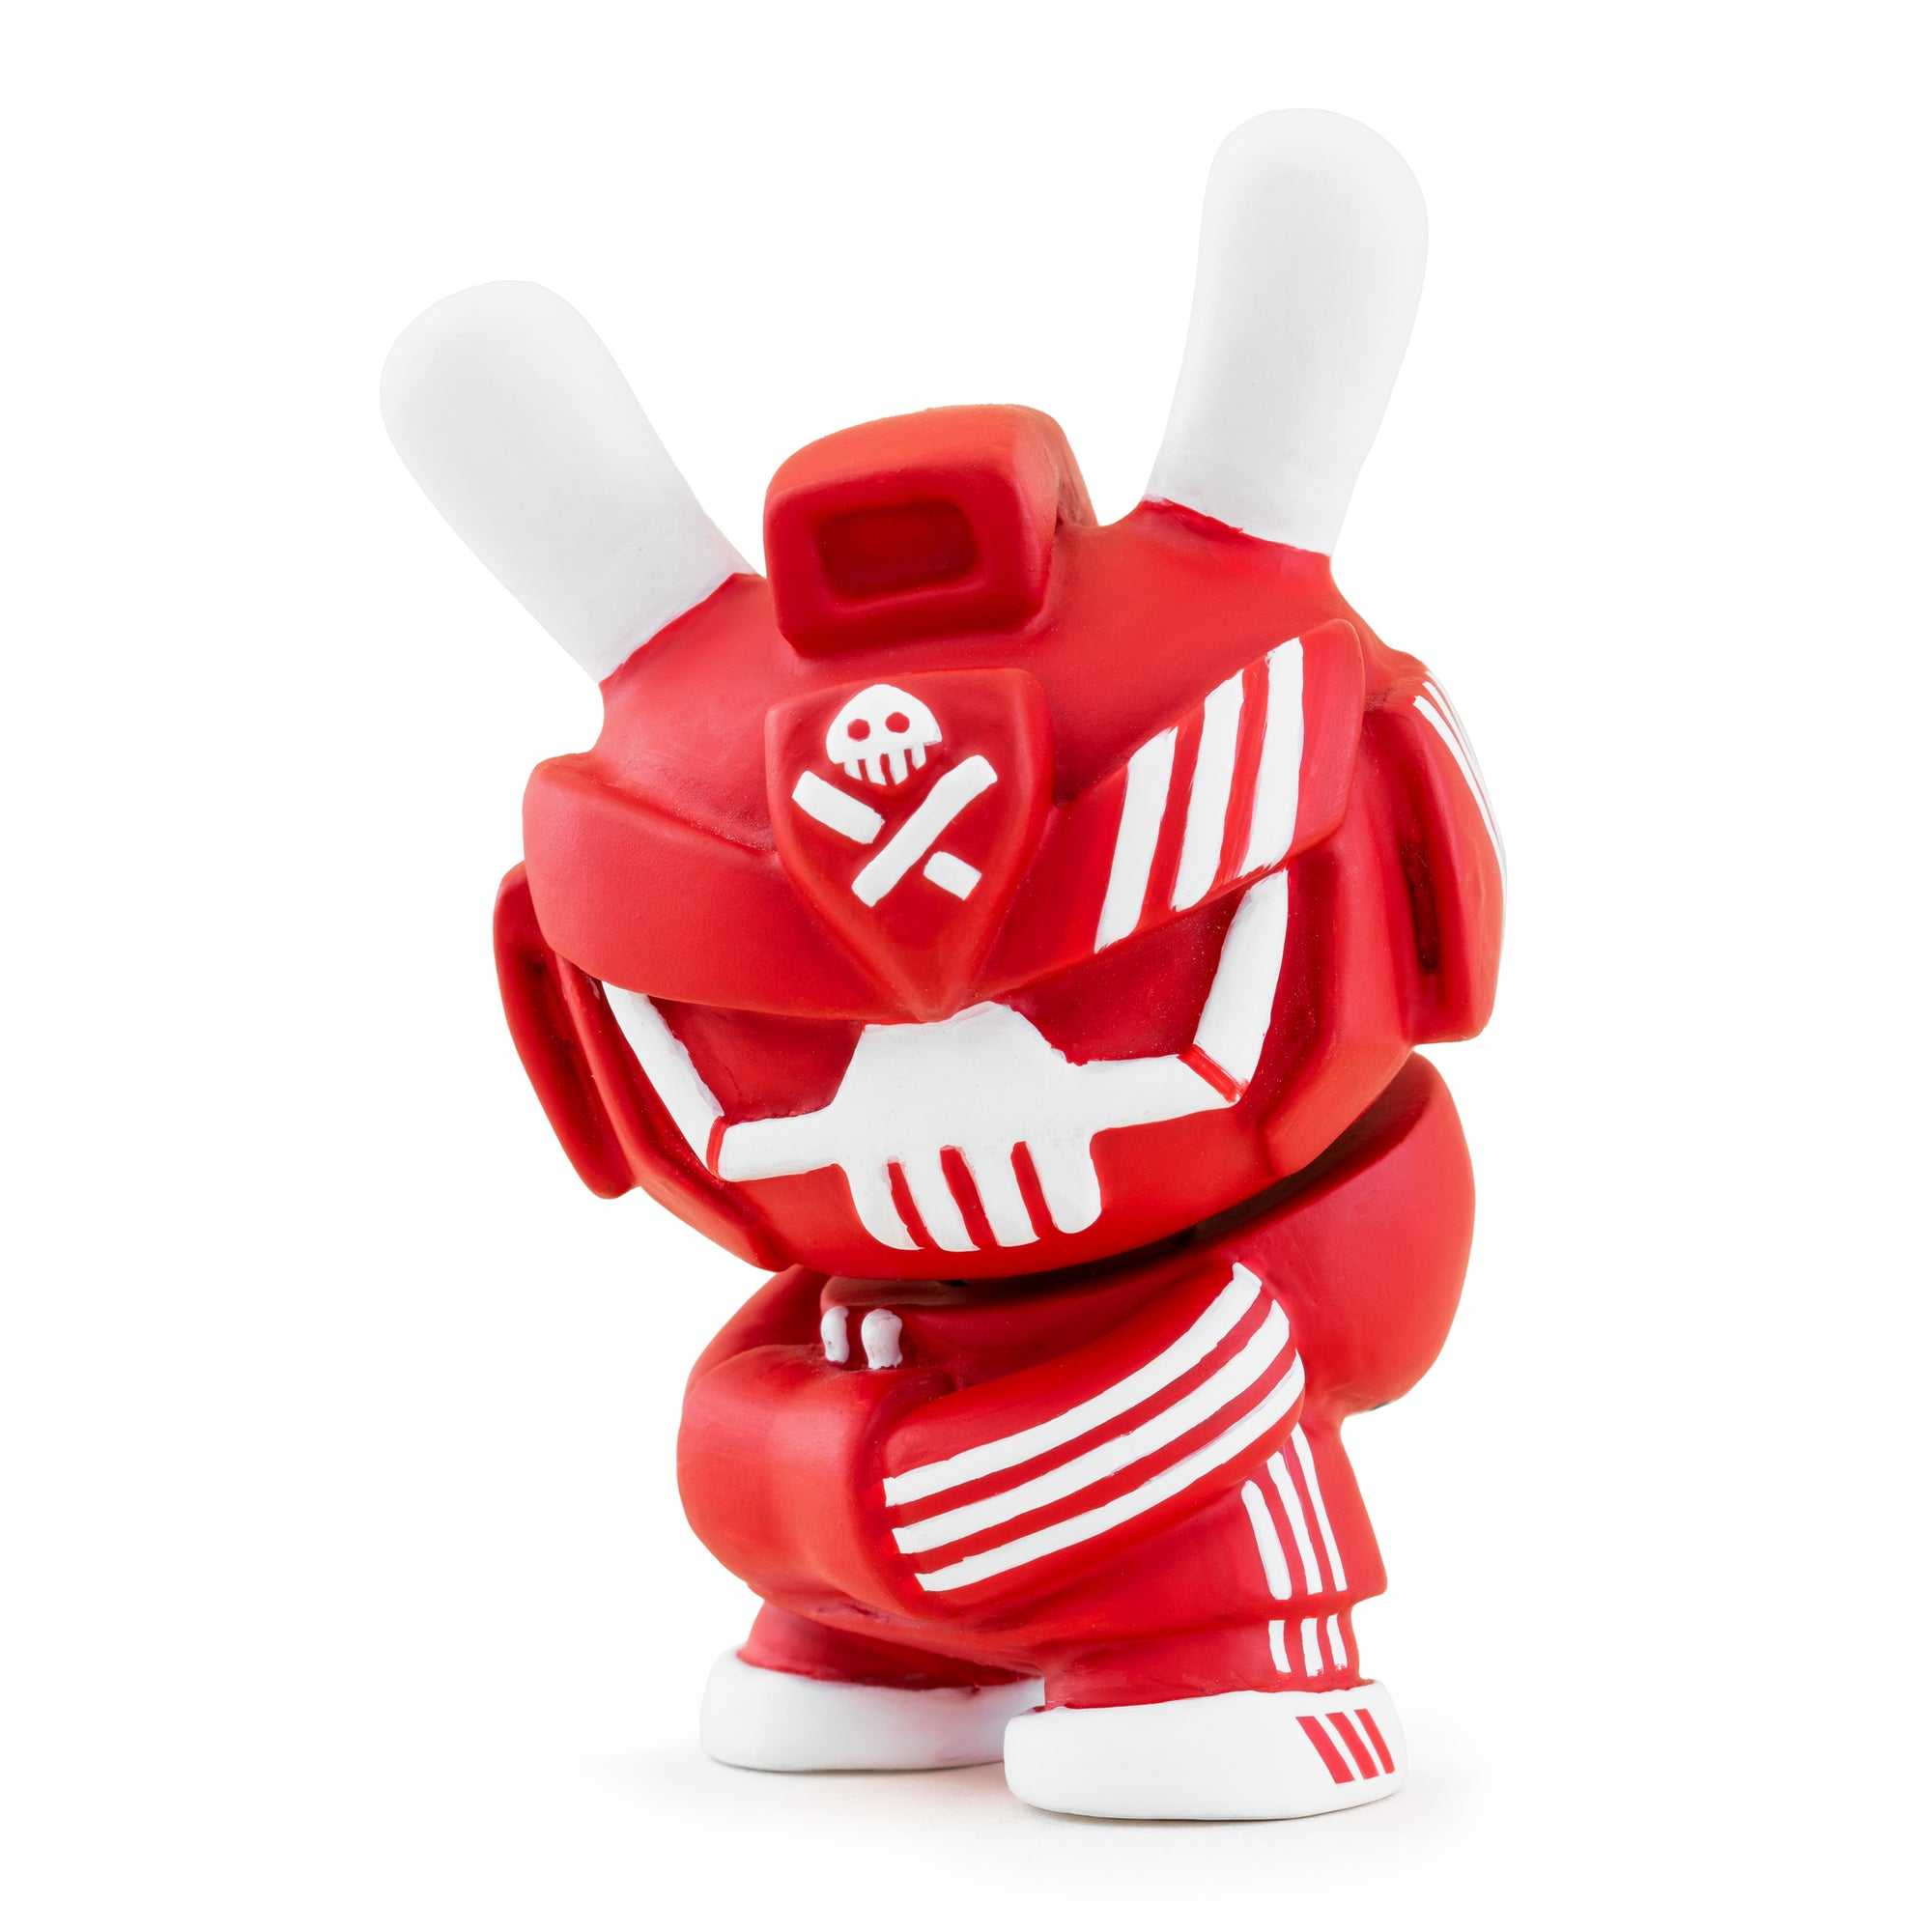 Red Nakai OG Resin BabyTEQ Dunny + K9 by Quiccs (Signed + Numbered)